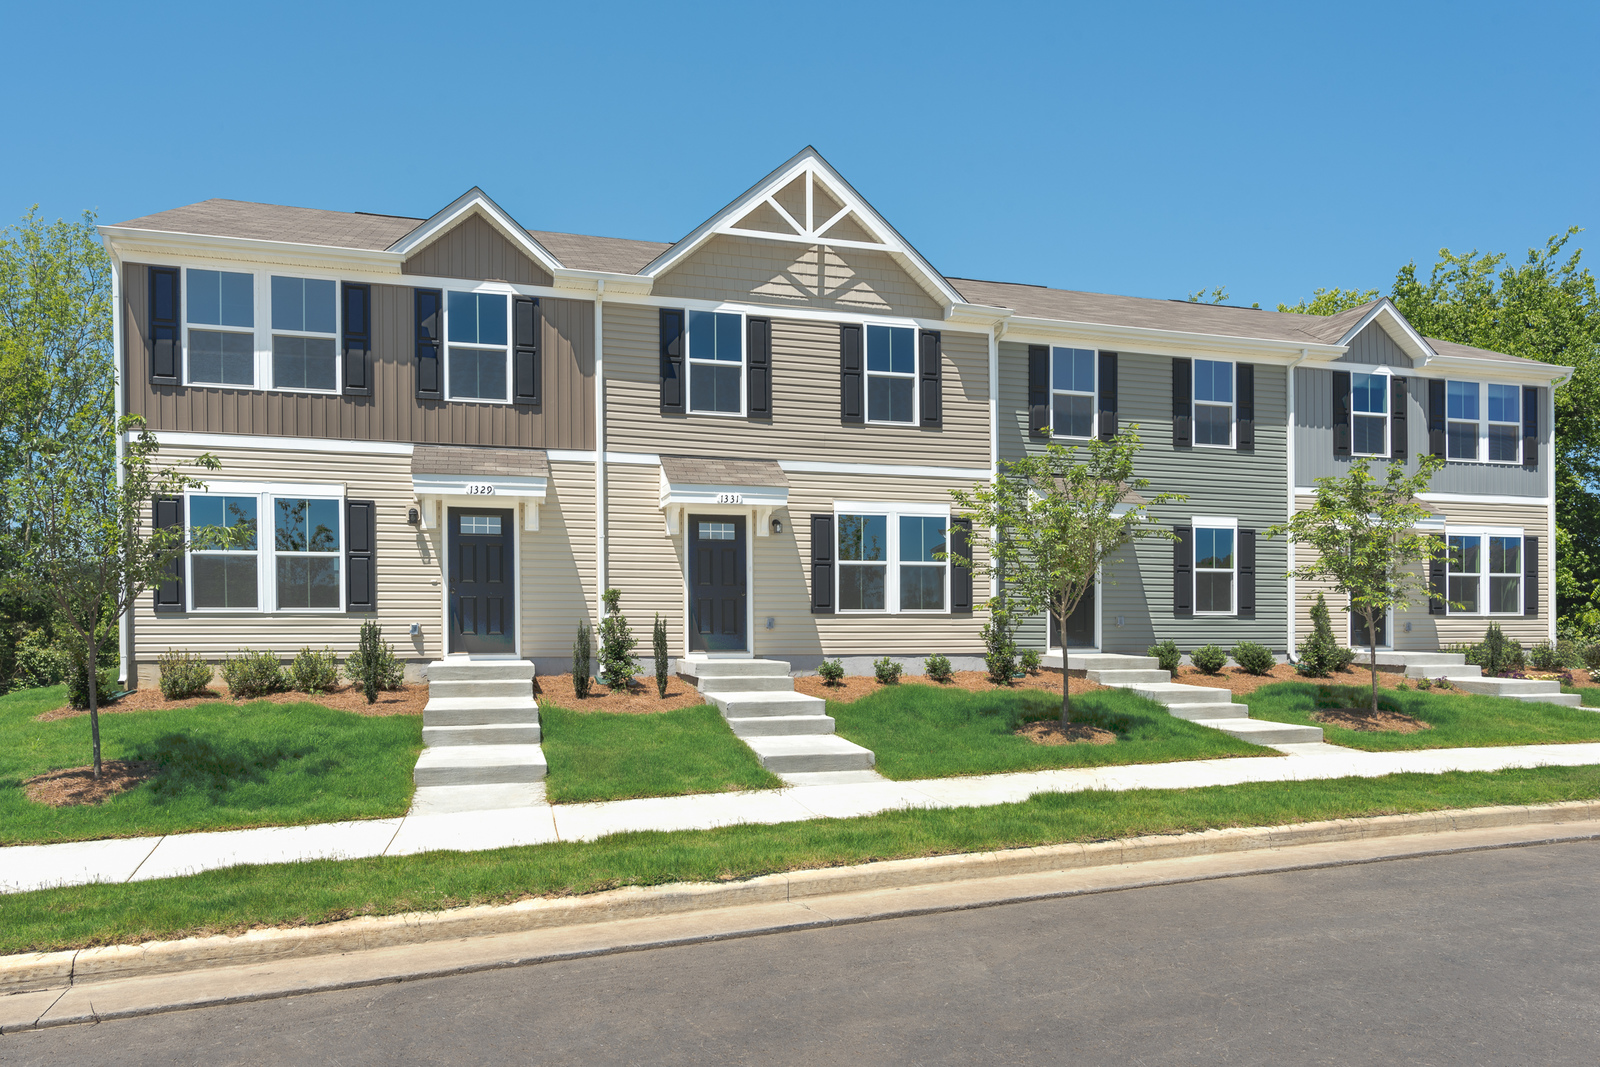 New Homes For Sale At Belle Arbor Townes In Nashville Tn Within The